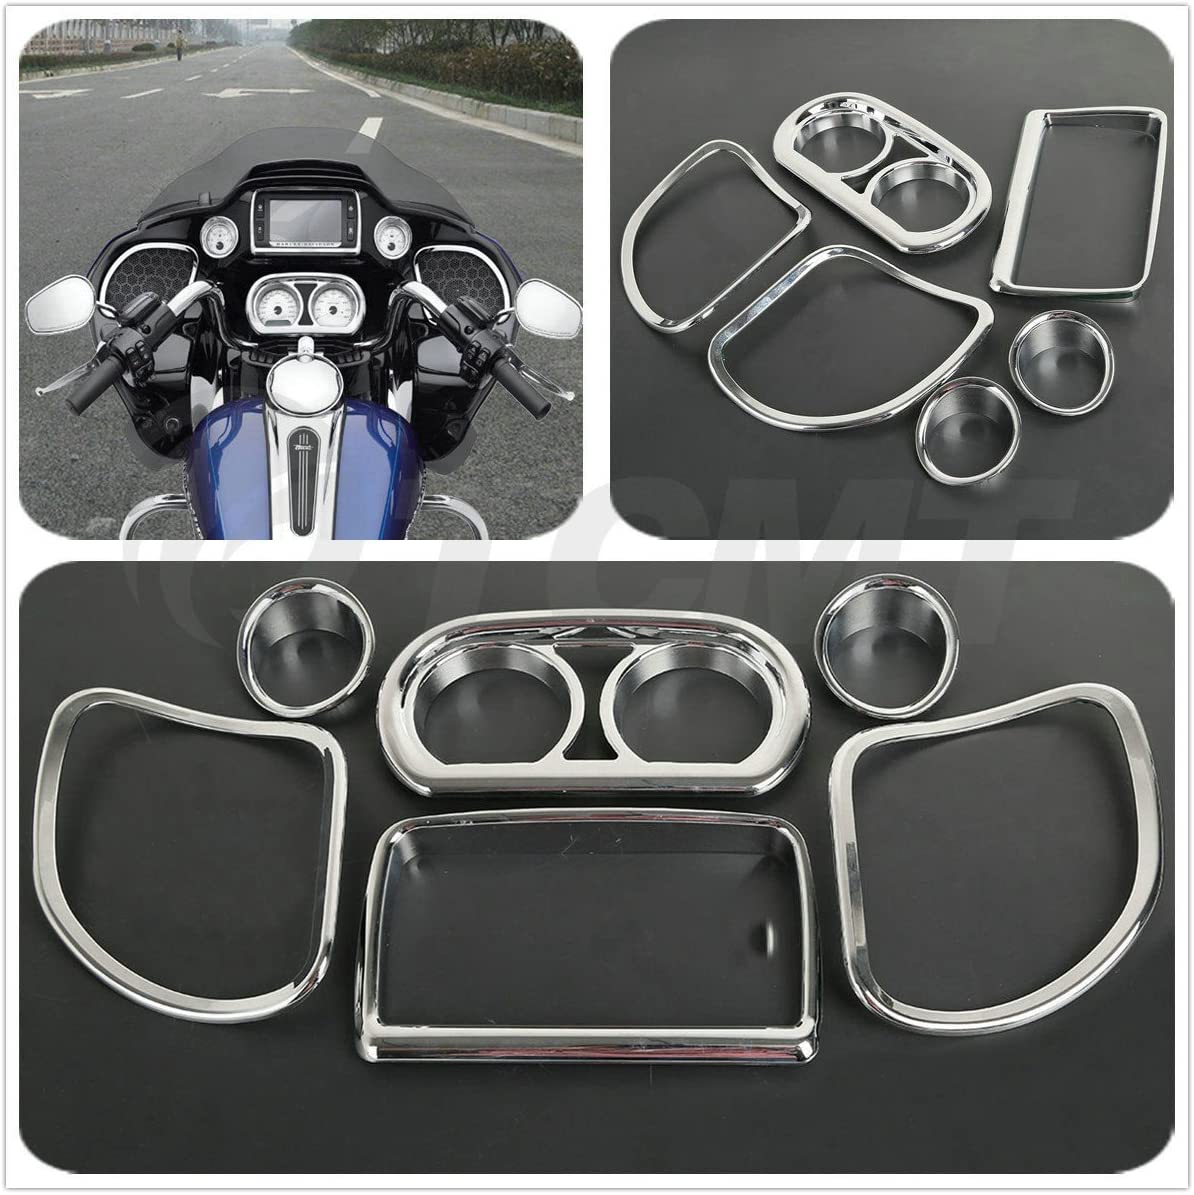 Replaces : 61400296 XMT-MOTO Inner Fairing Speedometer Radio Speaker Trim Kit For Harley Road Glide FLTRX 2015-2018,Road Glide Special FLTRXS 2015-2018,Road Glide Ultra FLTRU 2016-2017